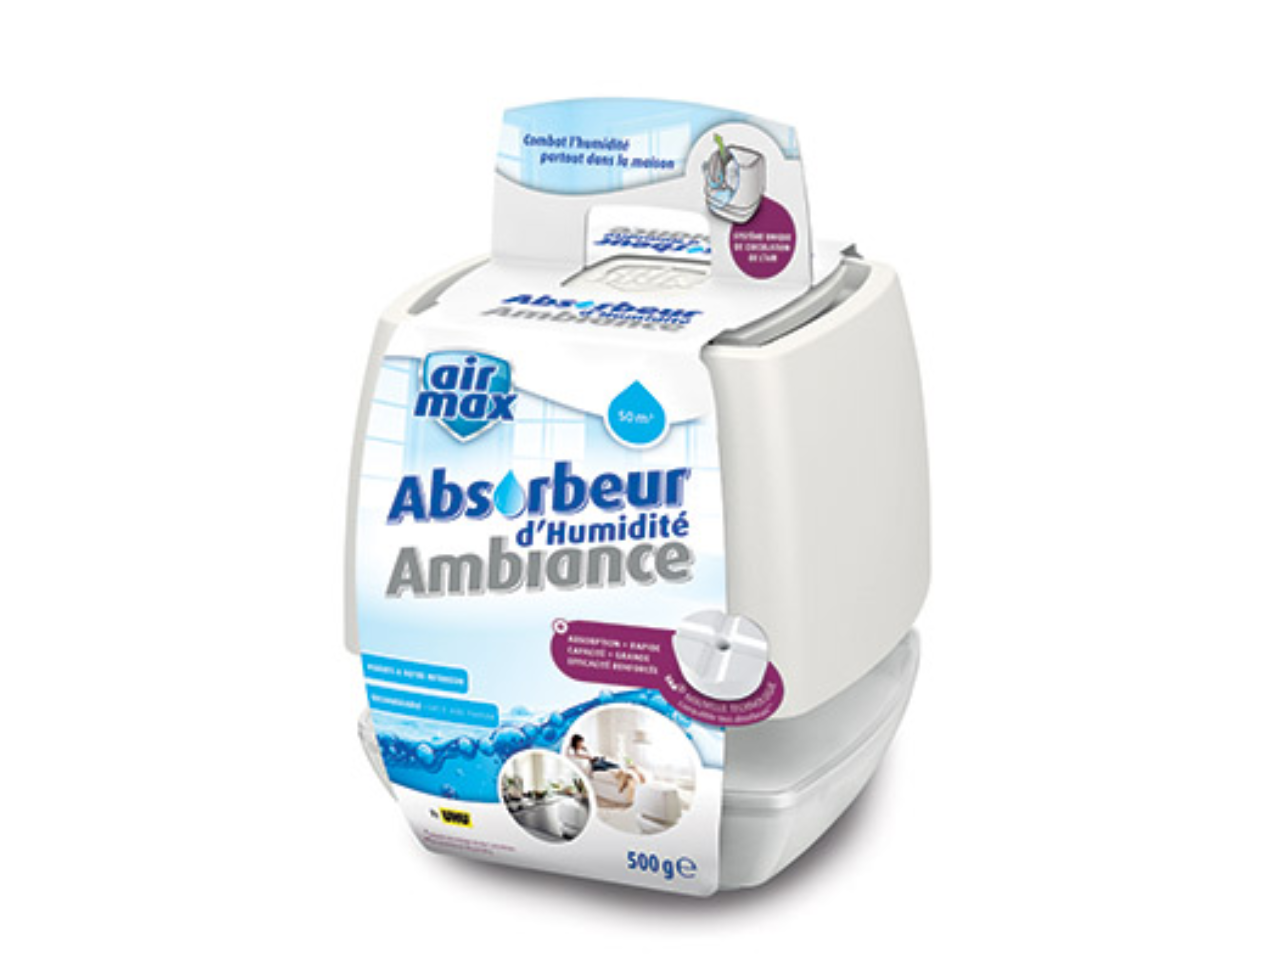 Absorbeur Ambiance